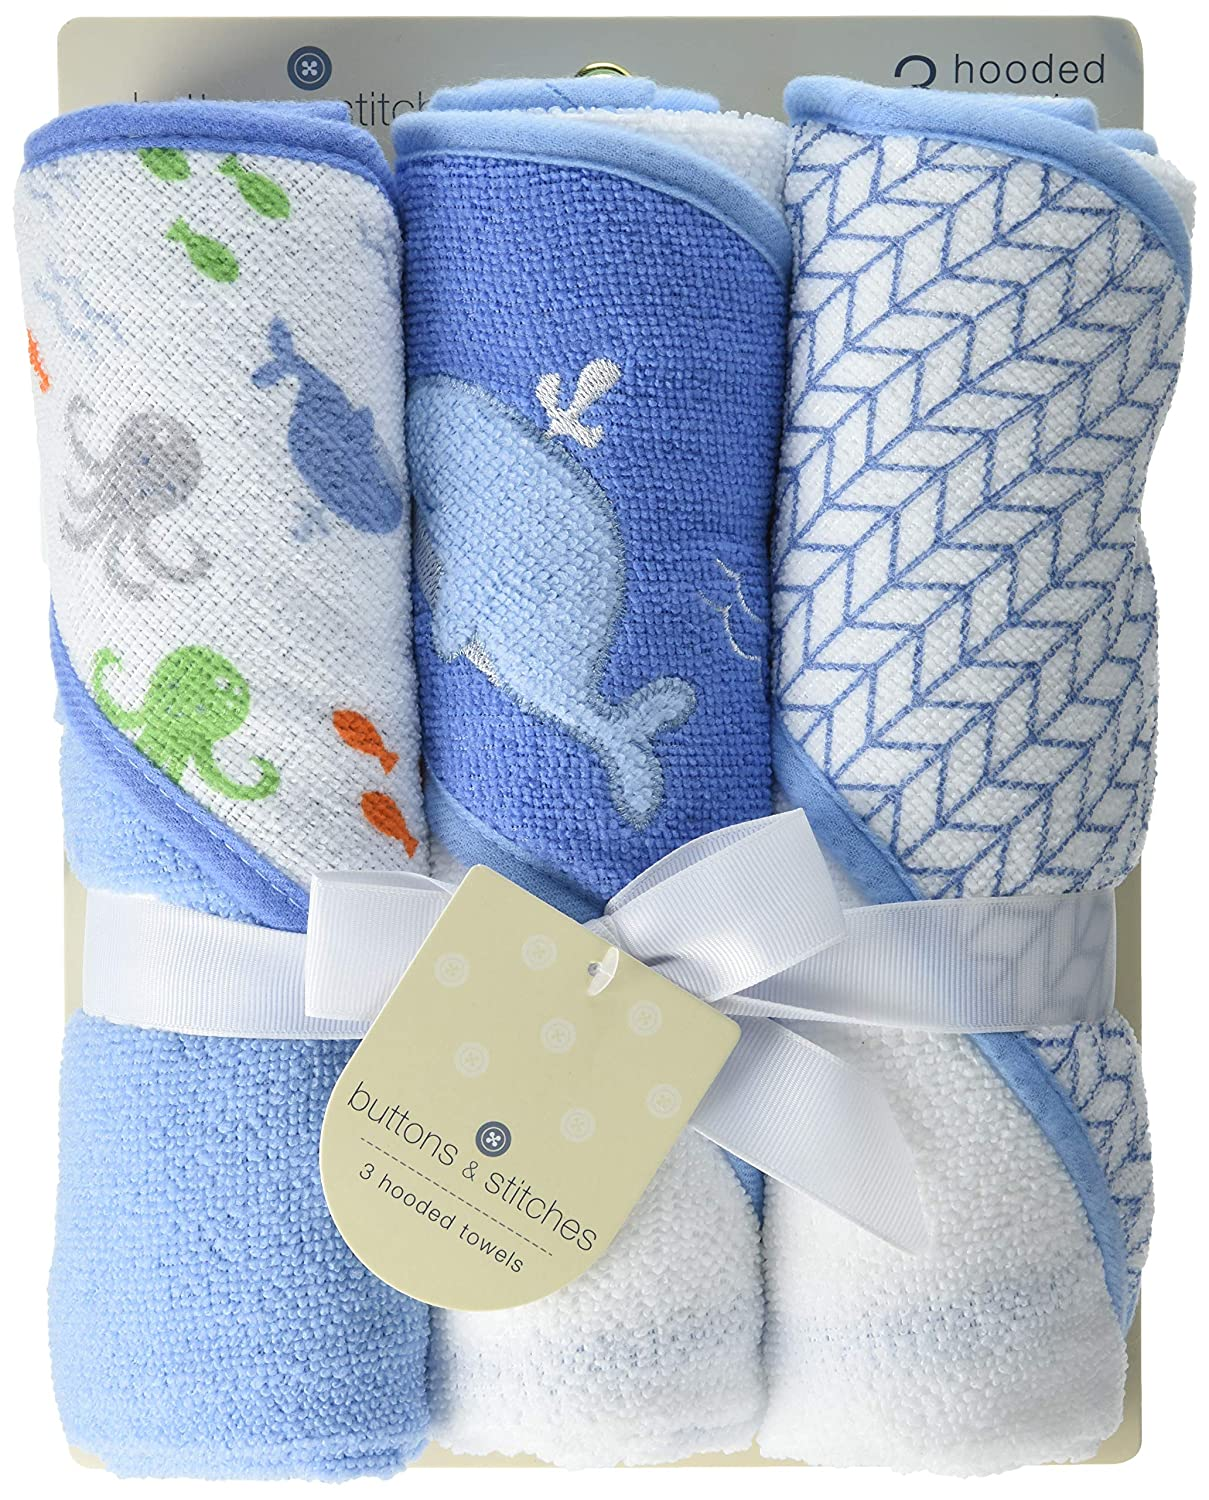 Buttons and Stitches Culdie Buttons & Stitches 3 Pack Rolled Hooded Towels in Ocean Life Print